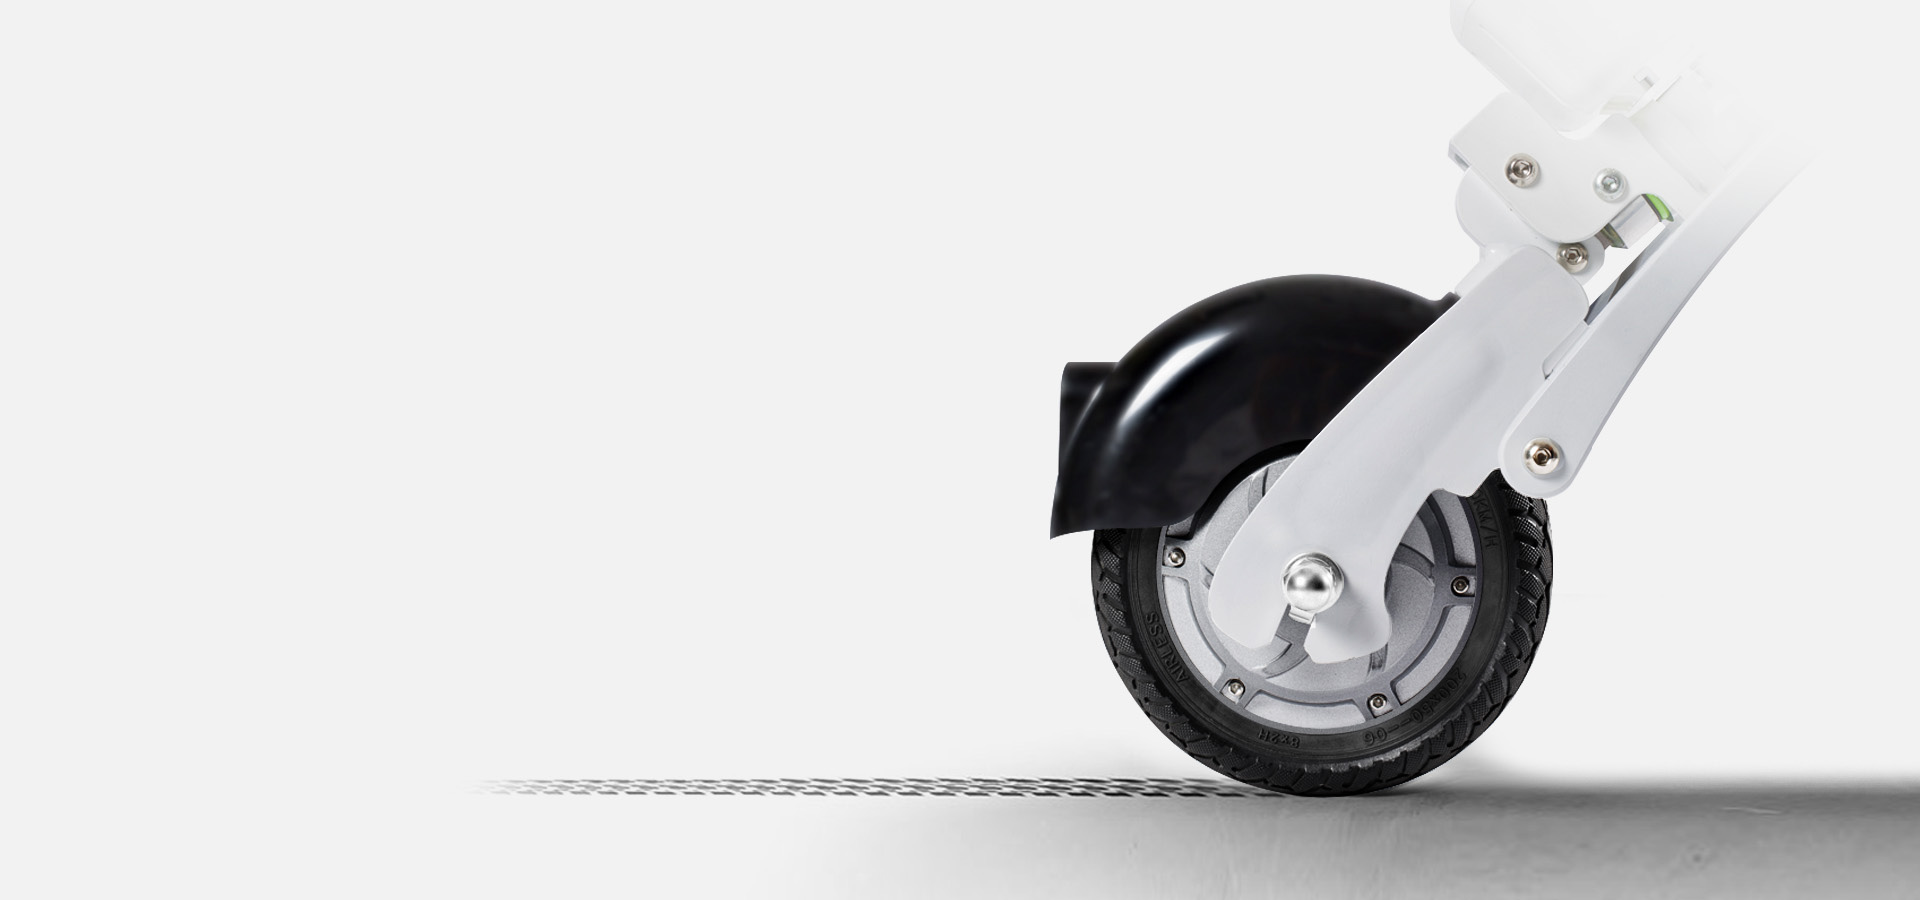 Airwheel E6 electric assist bicycle